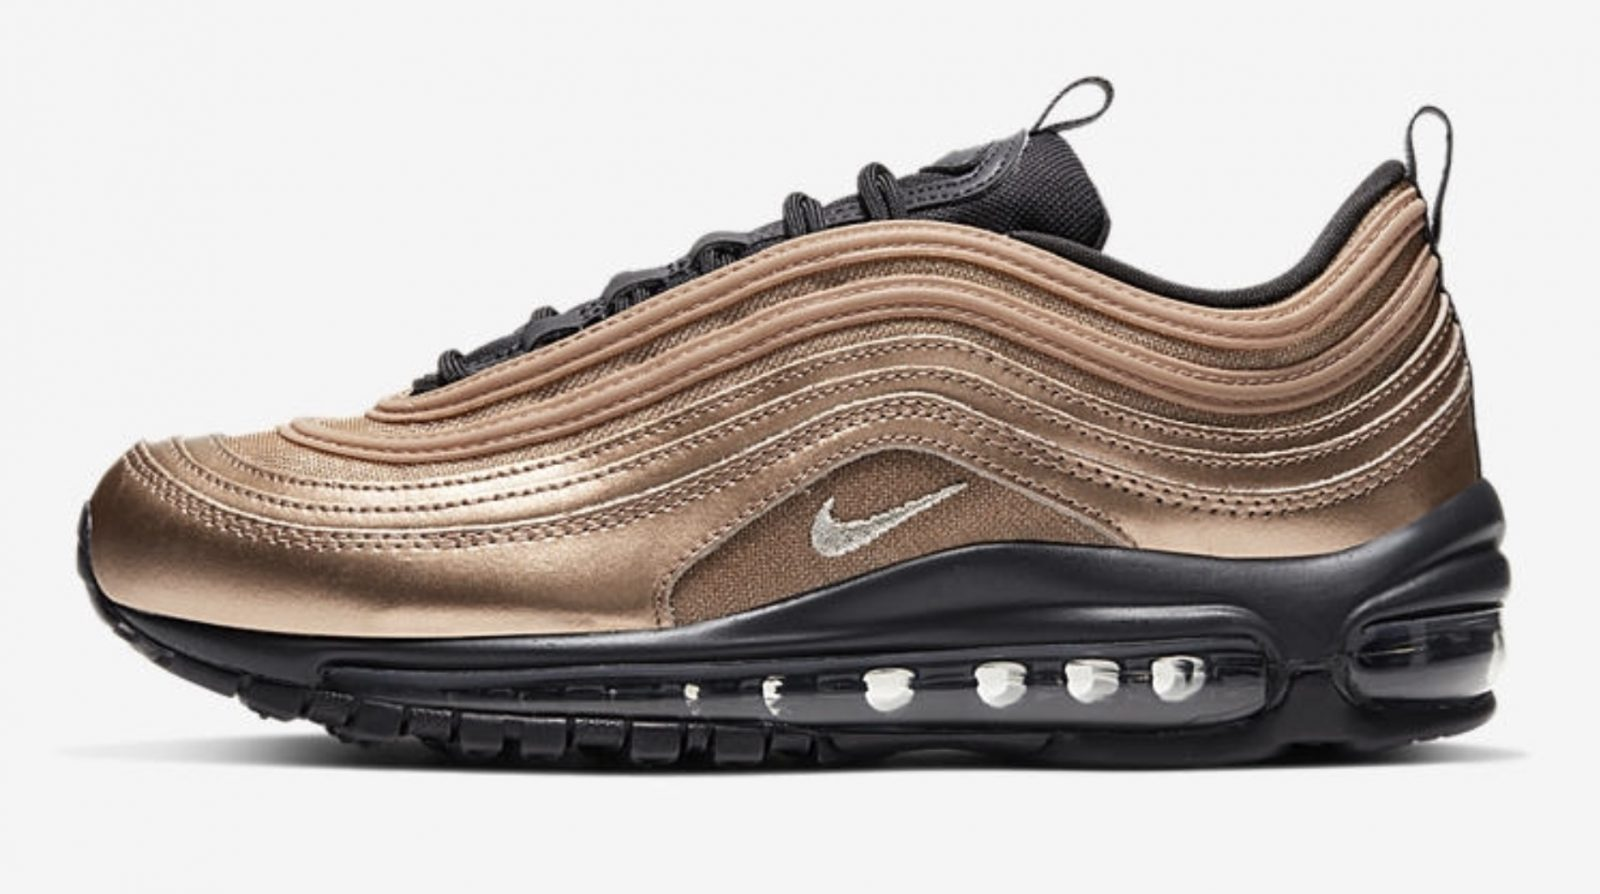 Get Seasonal In The Latest Nike Air Max 97 Metallic Gold side 2